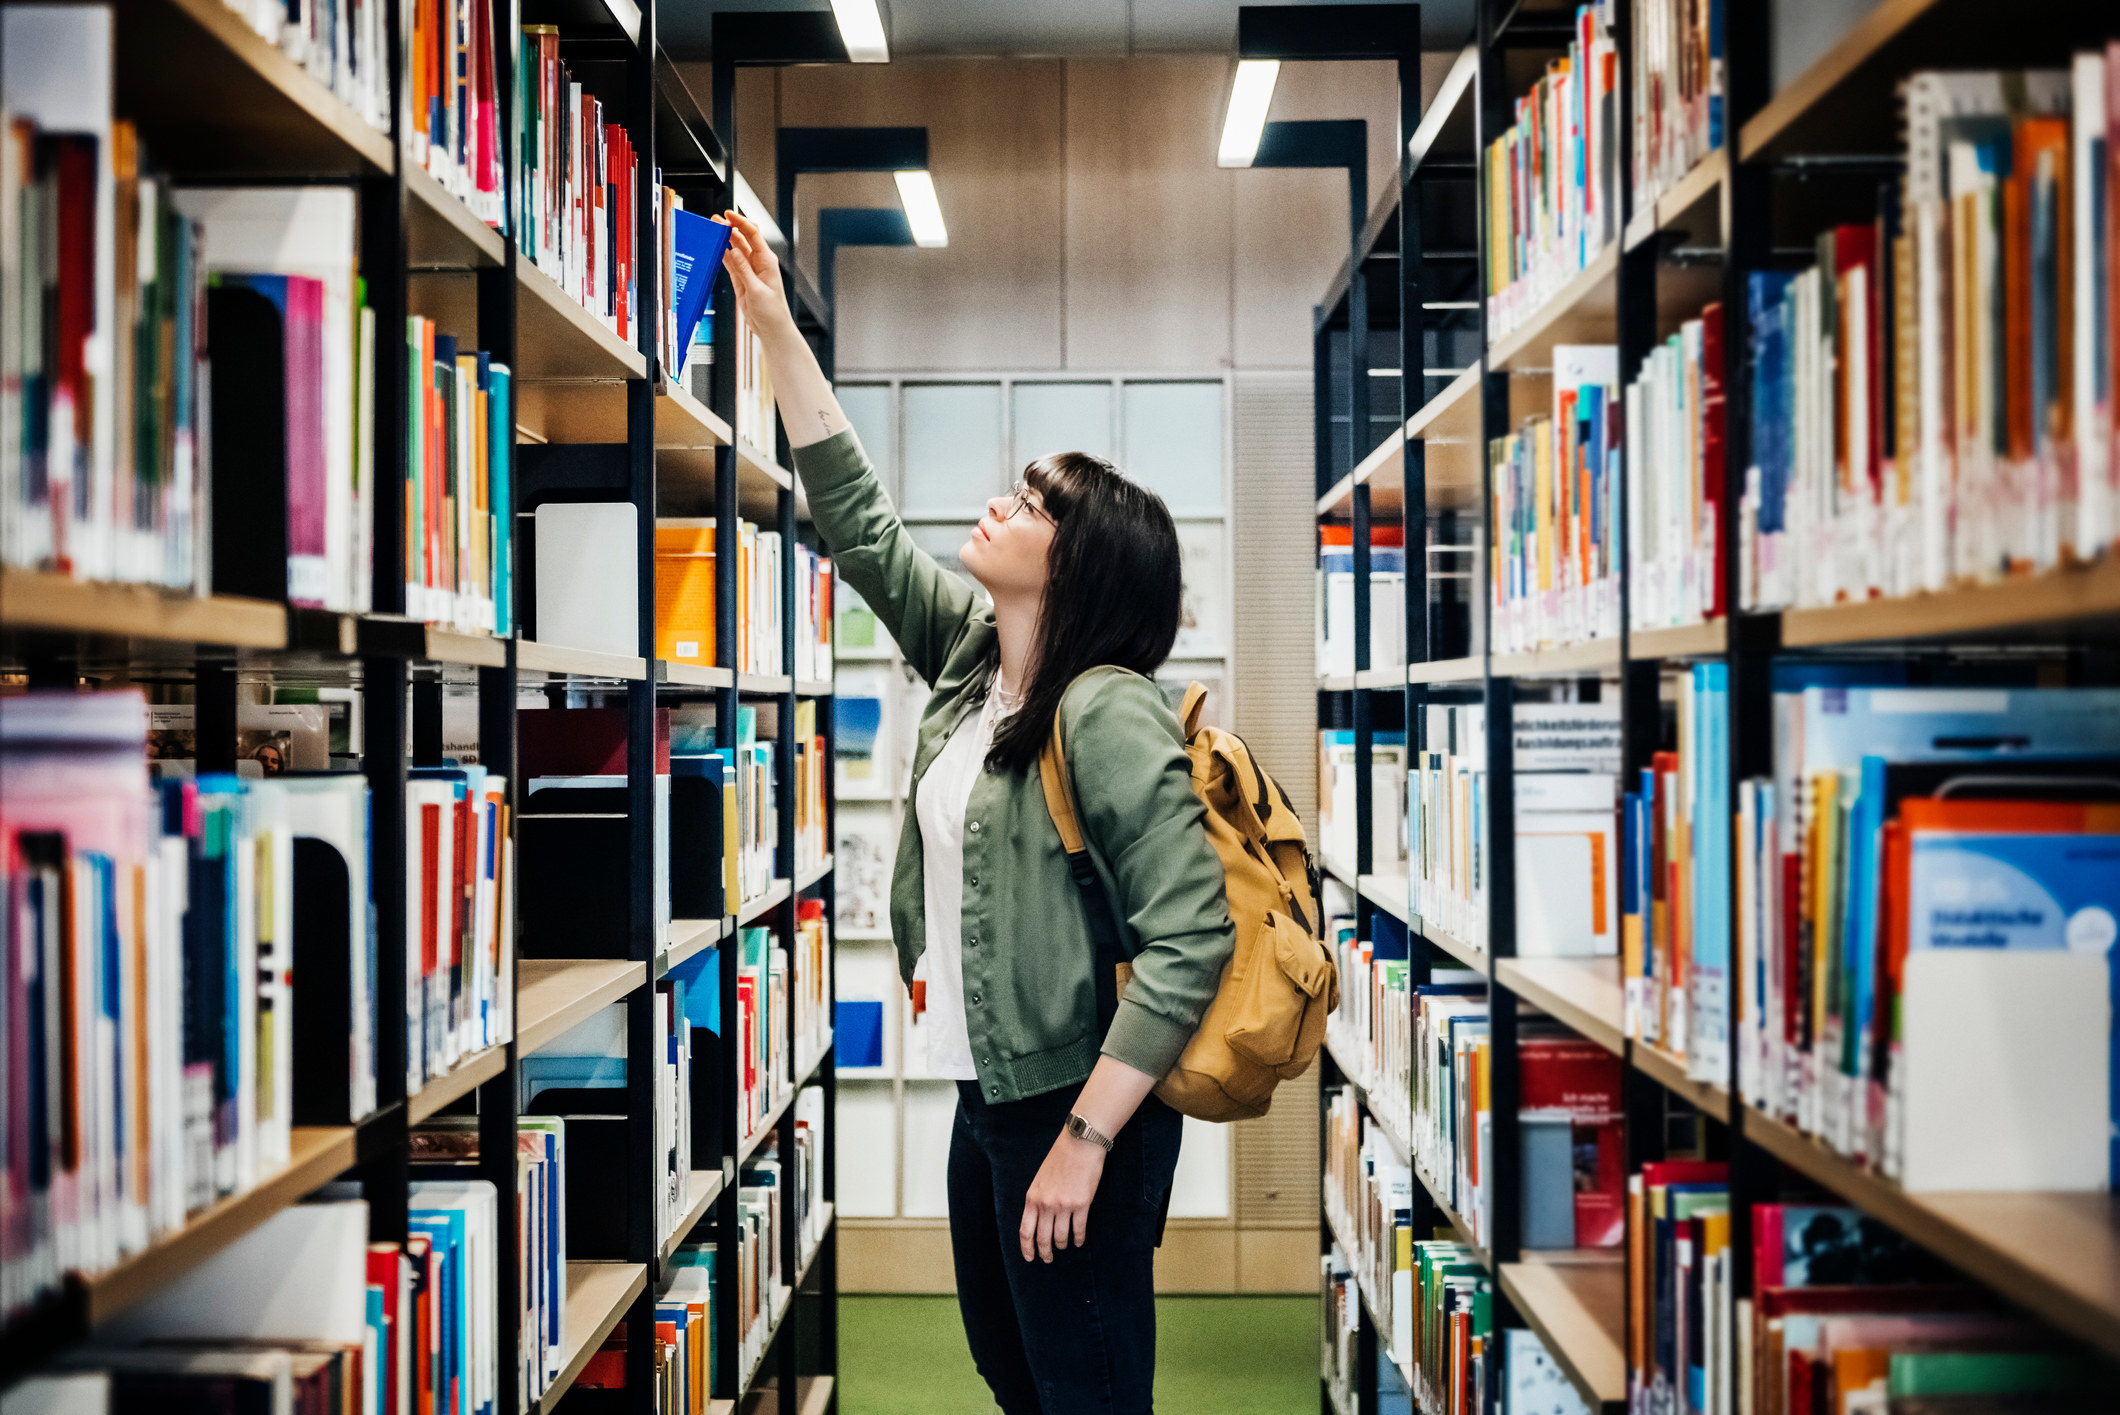 Student reaching for a book in the university library